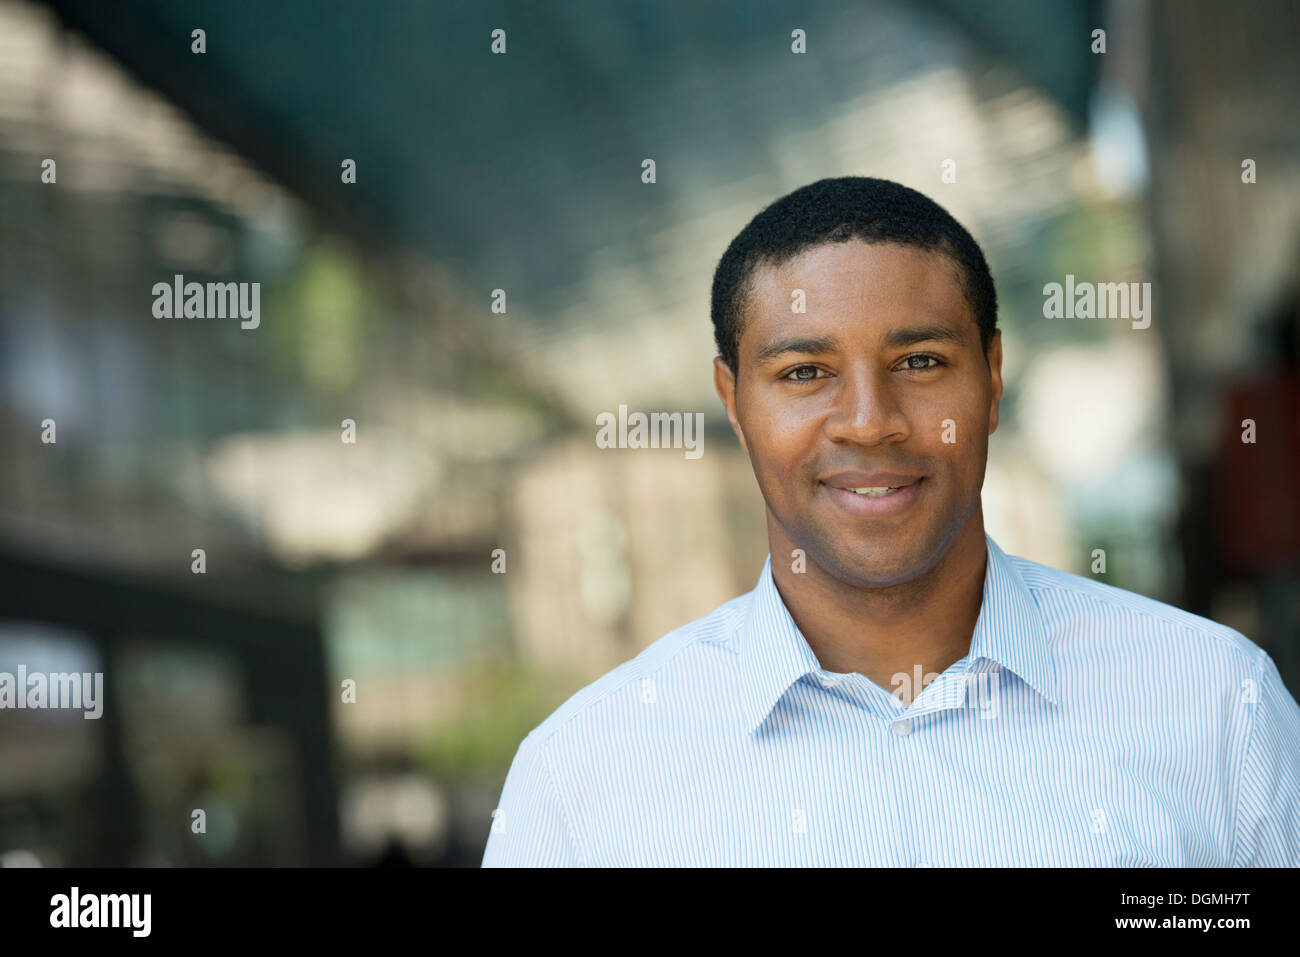 Business people on the move. A man in an open necked shirt smiling. - Stock Image